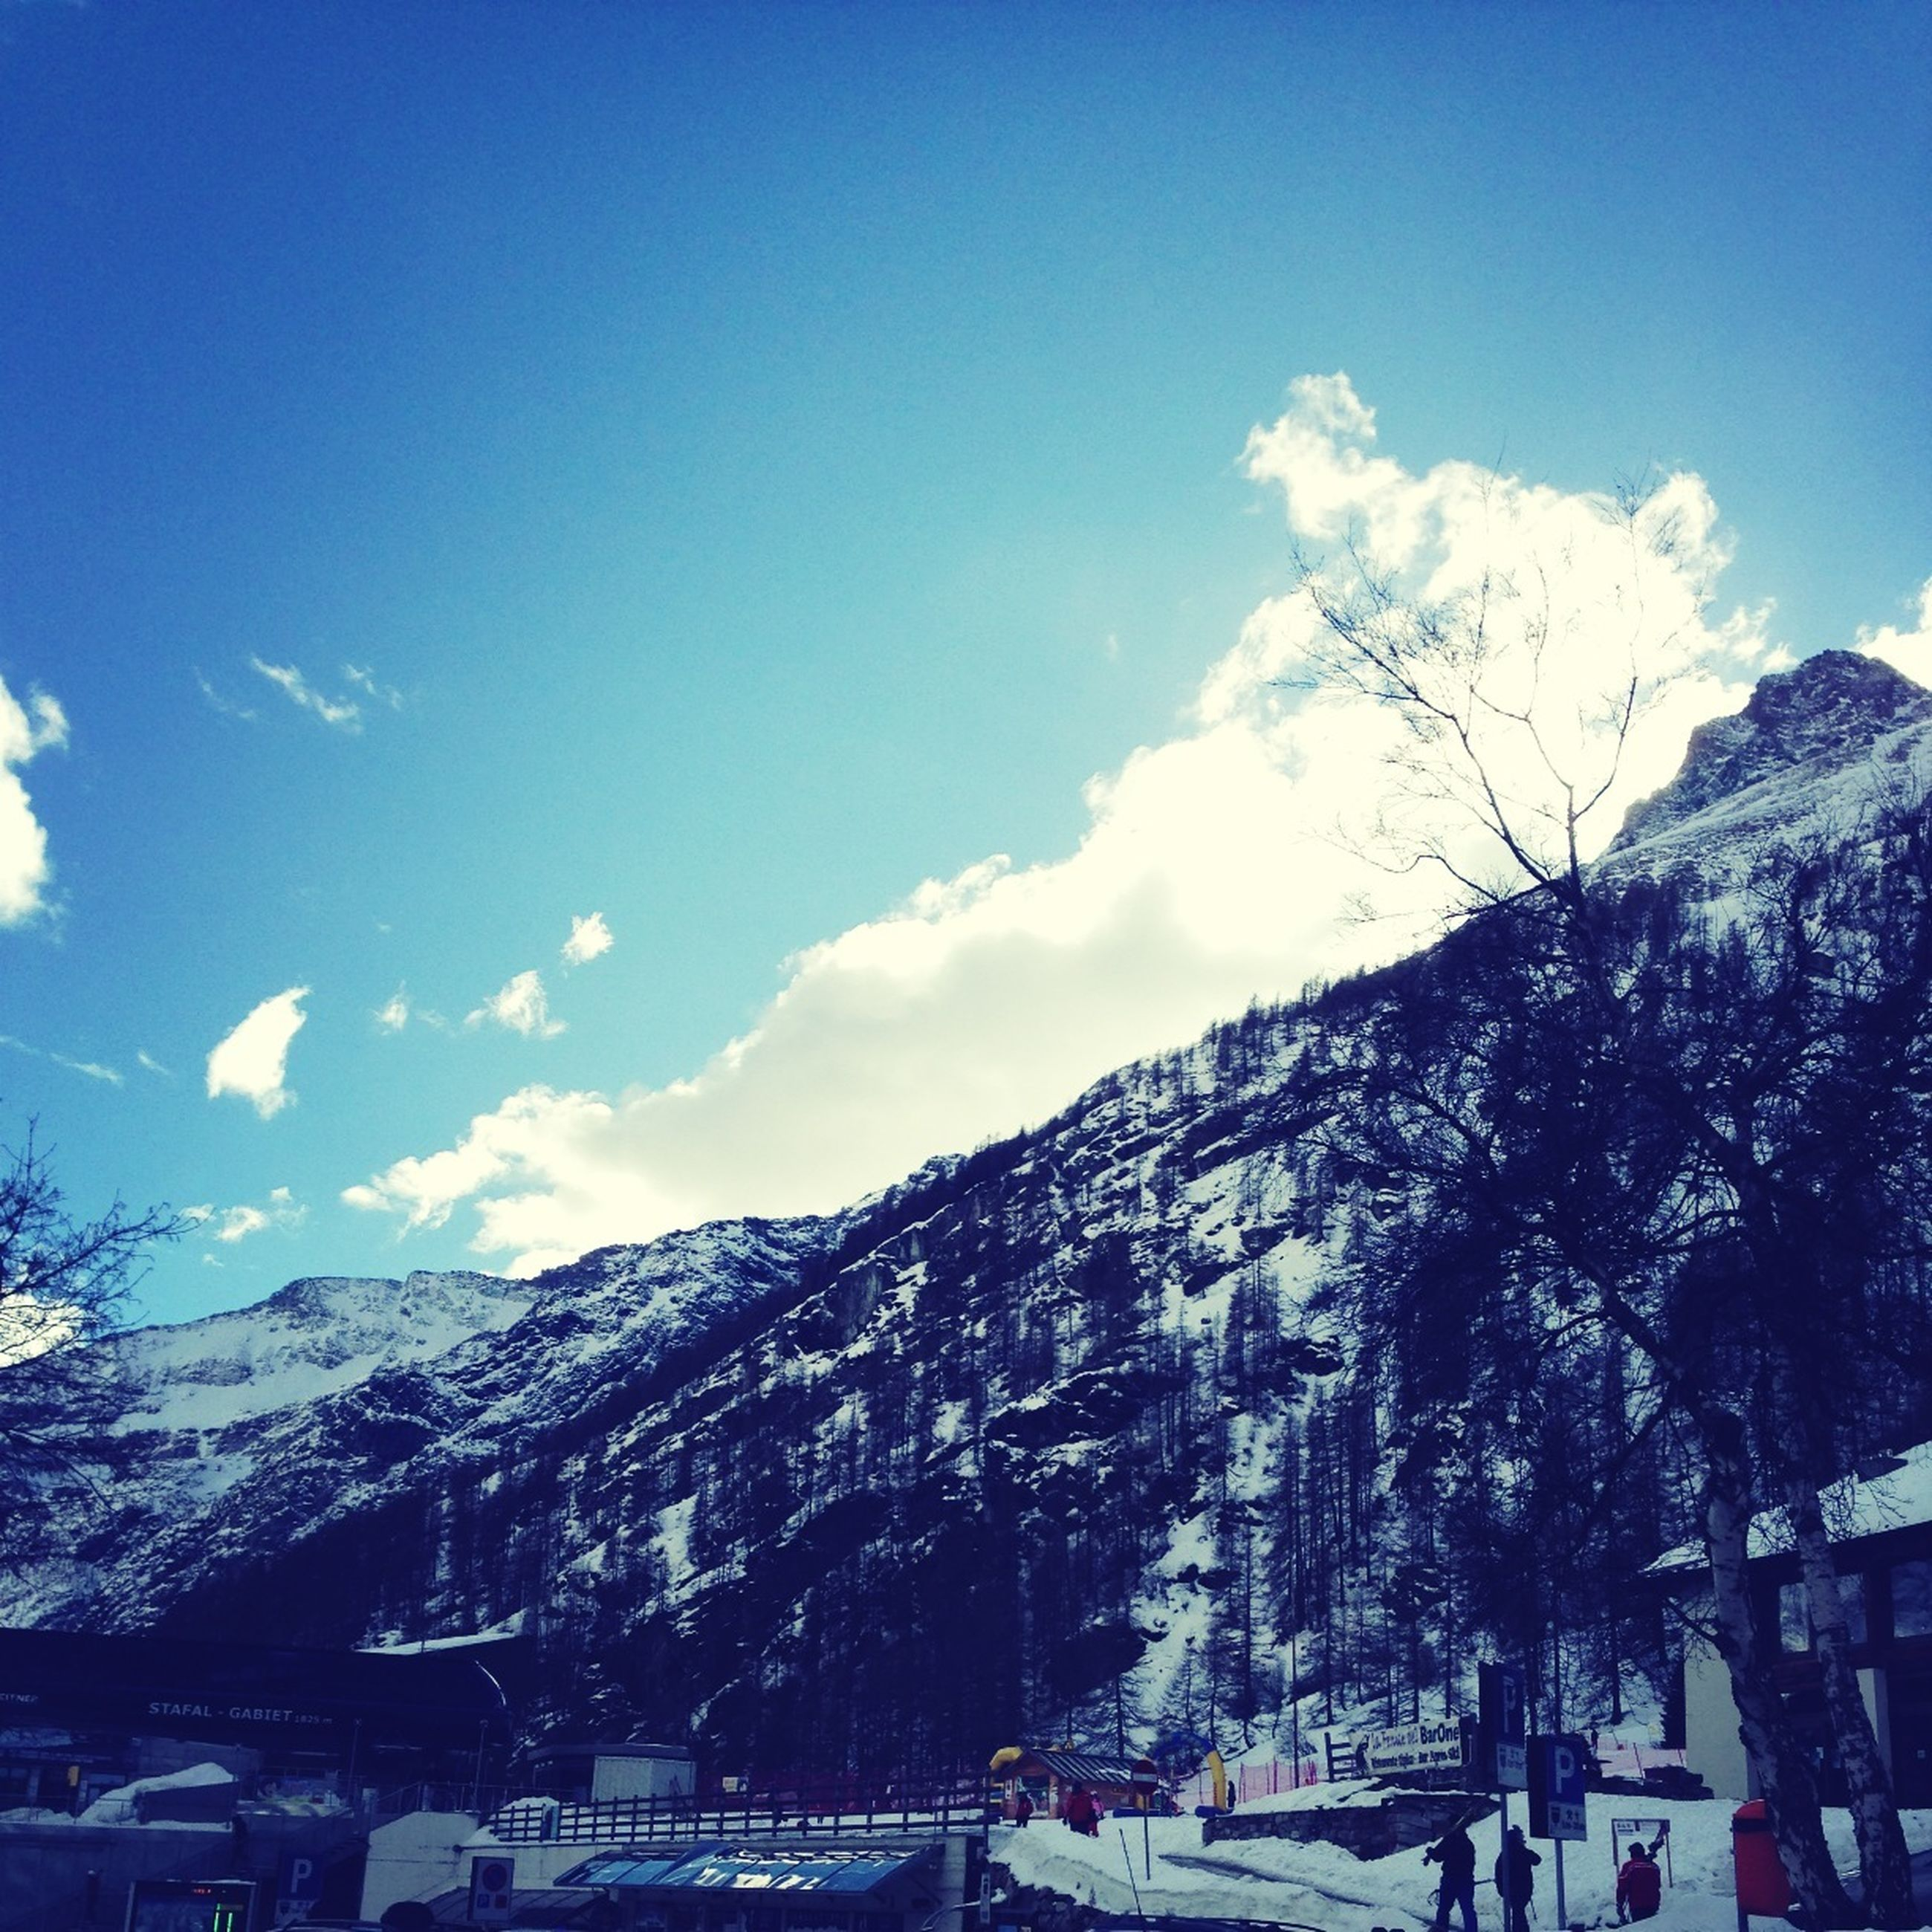 snow, mountain, winter, cold temperature, sky, building exterior, blue, tree, built structure, season, snowcapped mountain, mountain range, architecture, house, scenics, beauty in nature, nature, landscape, tranquil scene, tranquility